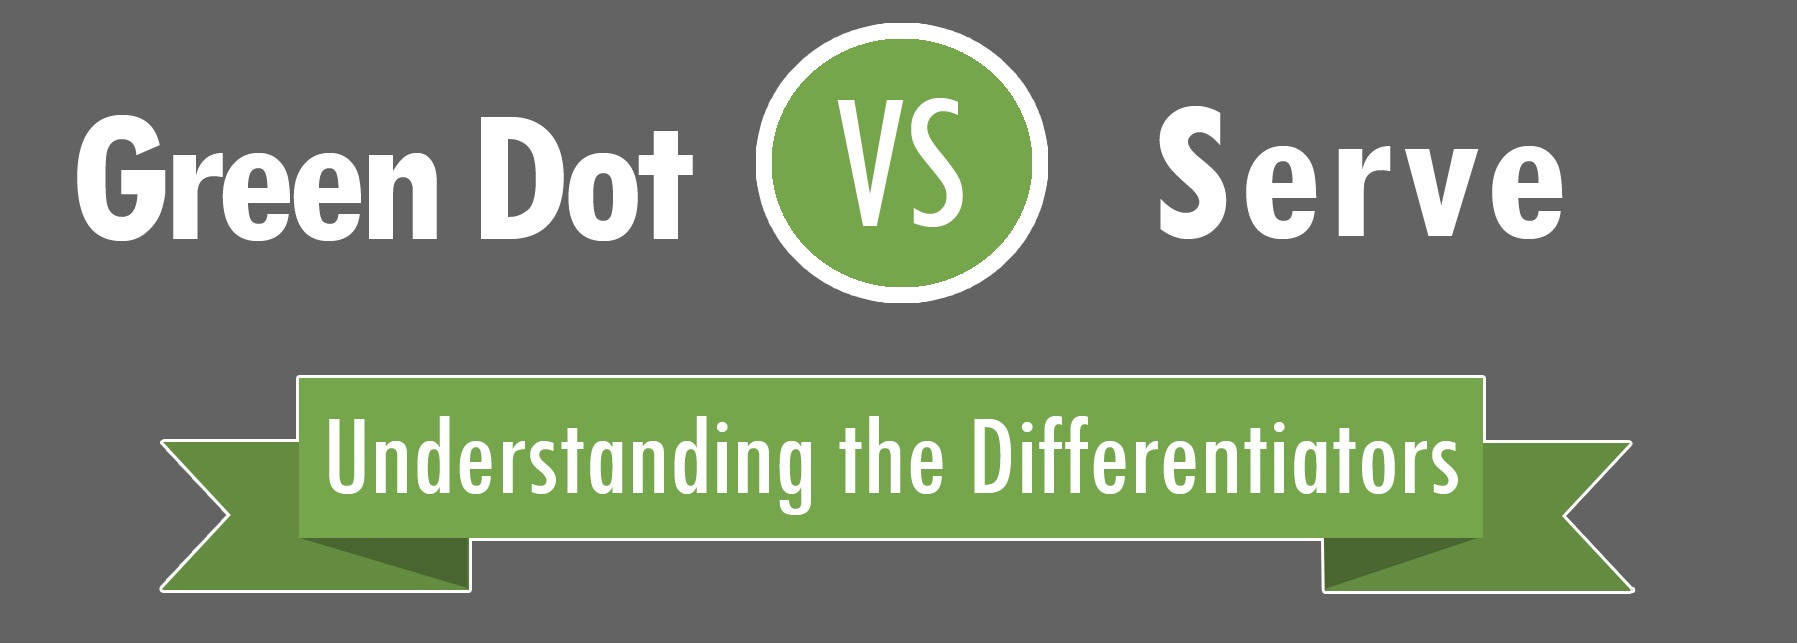 Green Dot And Serve Competition Heats Up, With Walmart Right In The Middle   PYMNTS.com